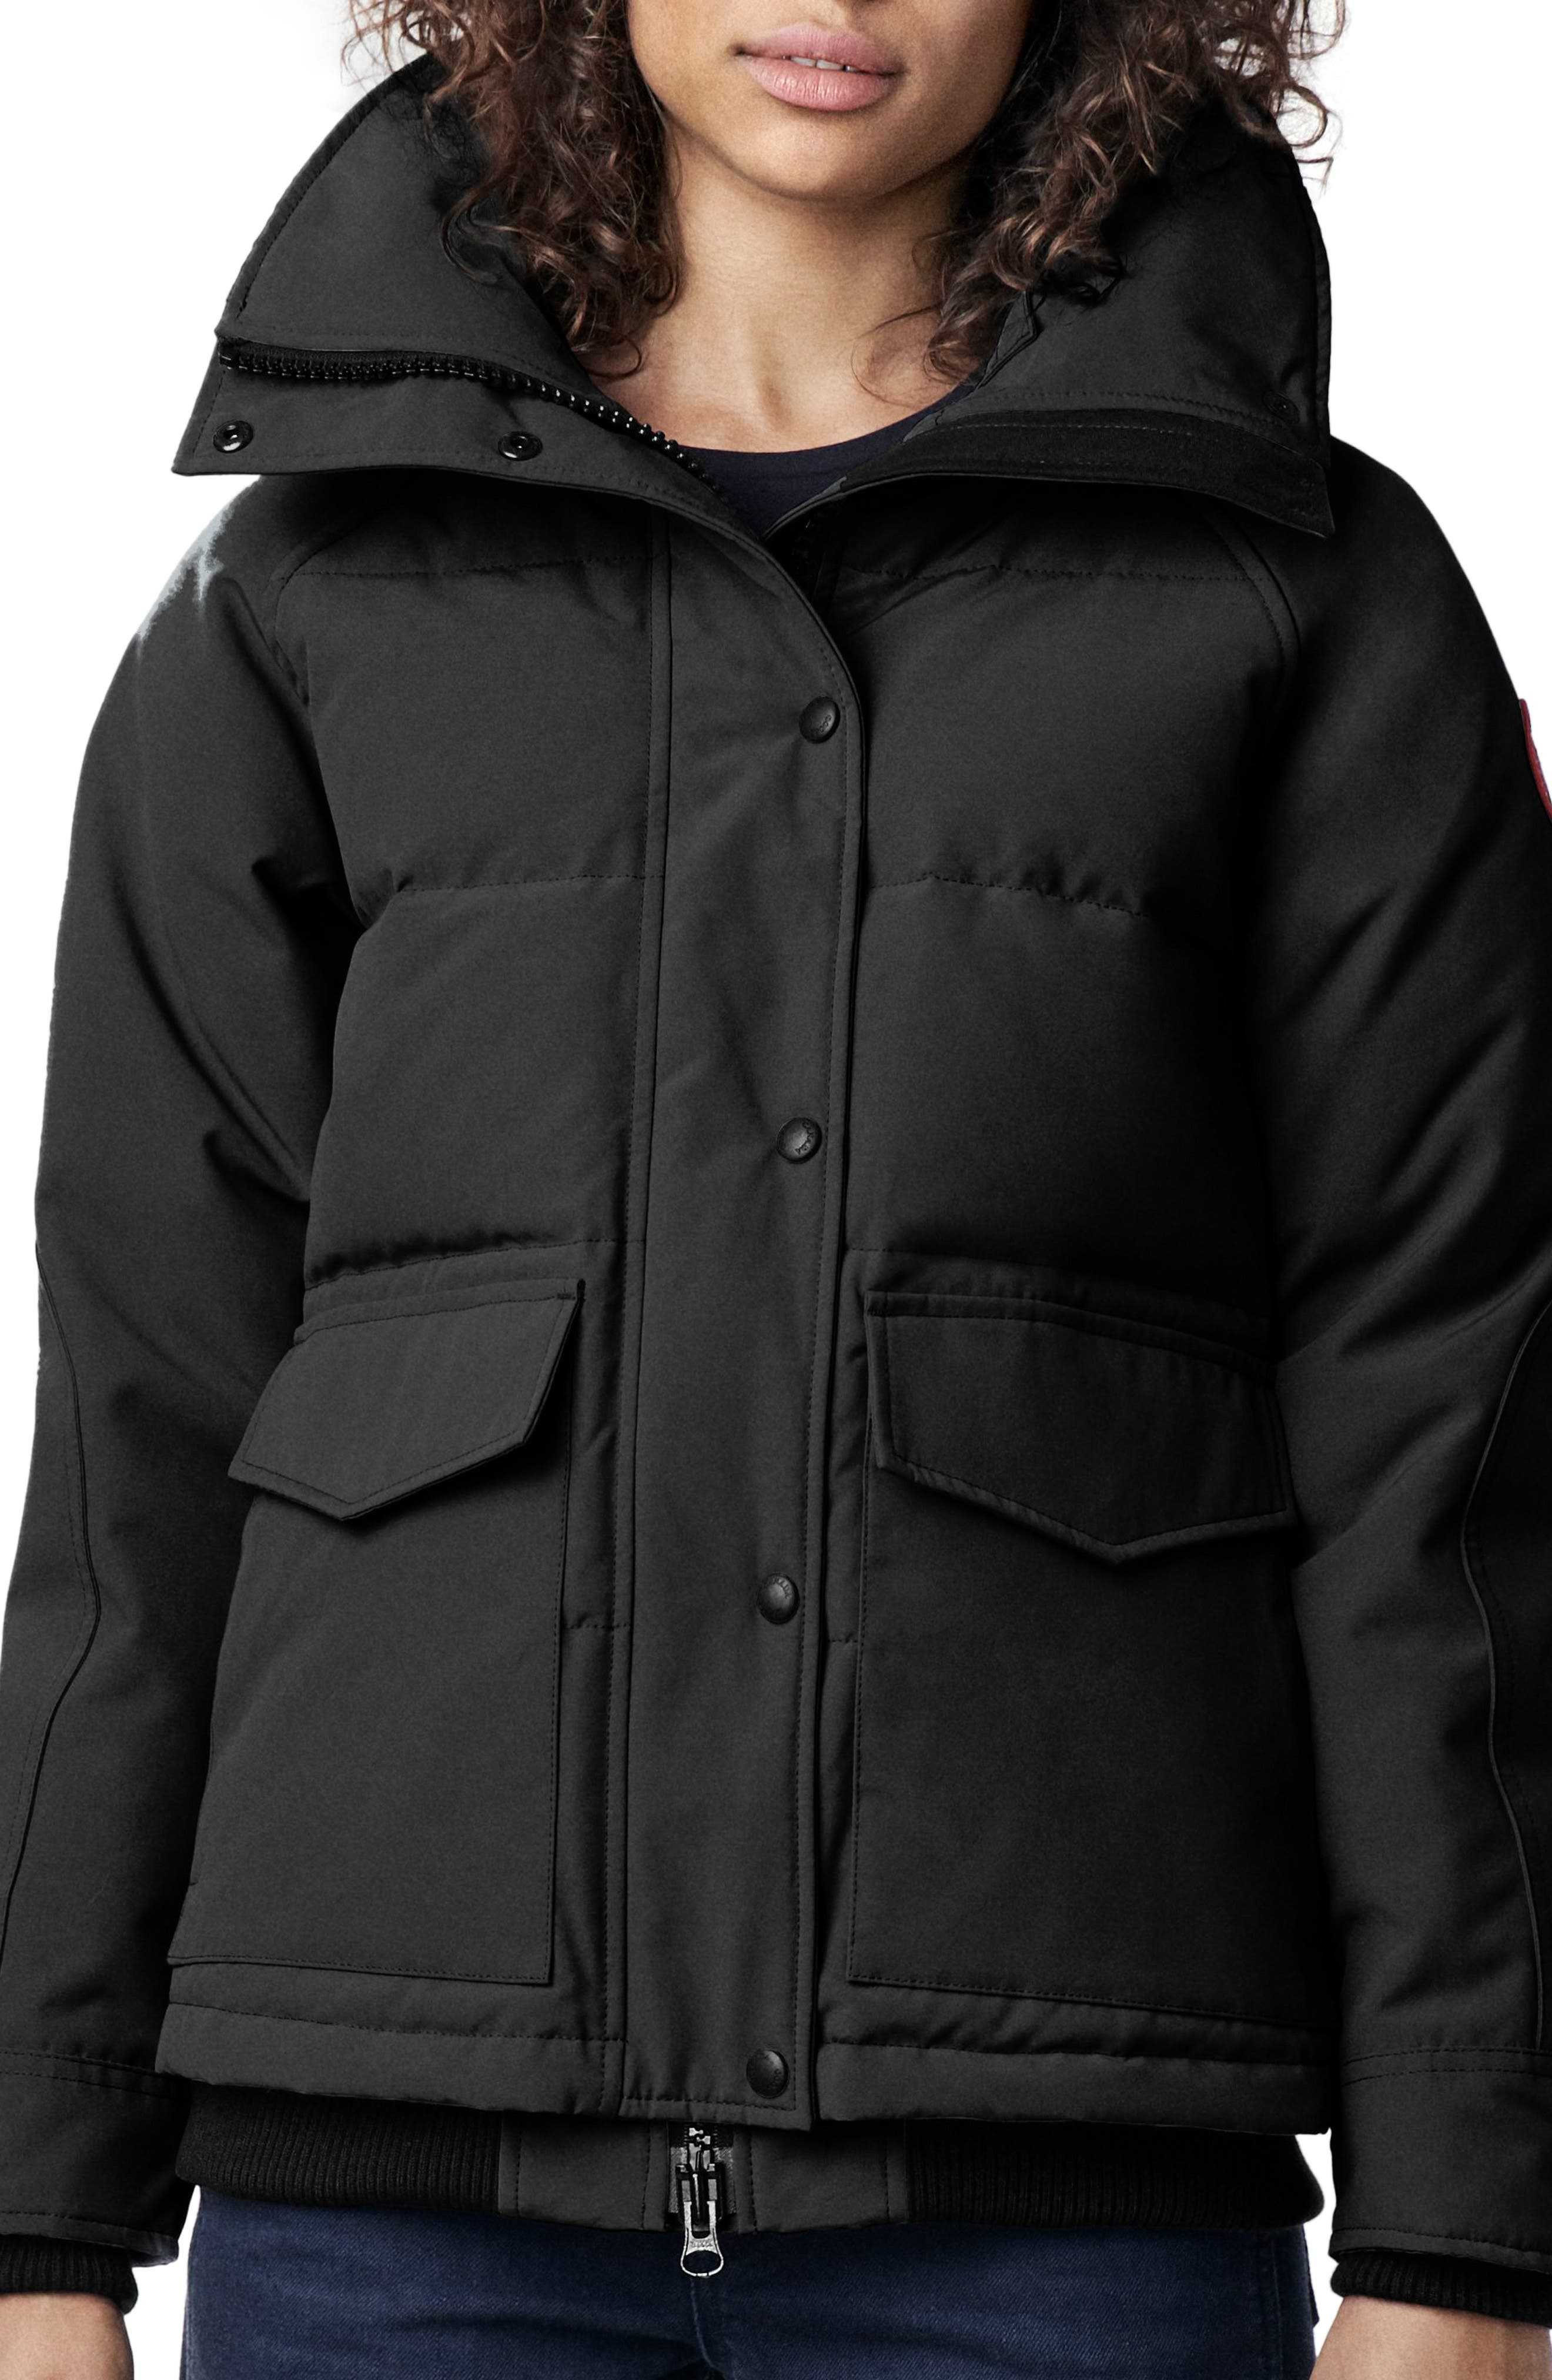 Canada Goose Deep Cove Arctic Tech Water Resistant 625 Fill Power Down Bomber Jacket